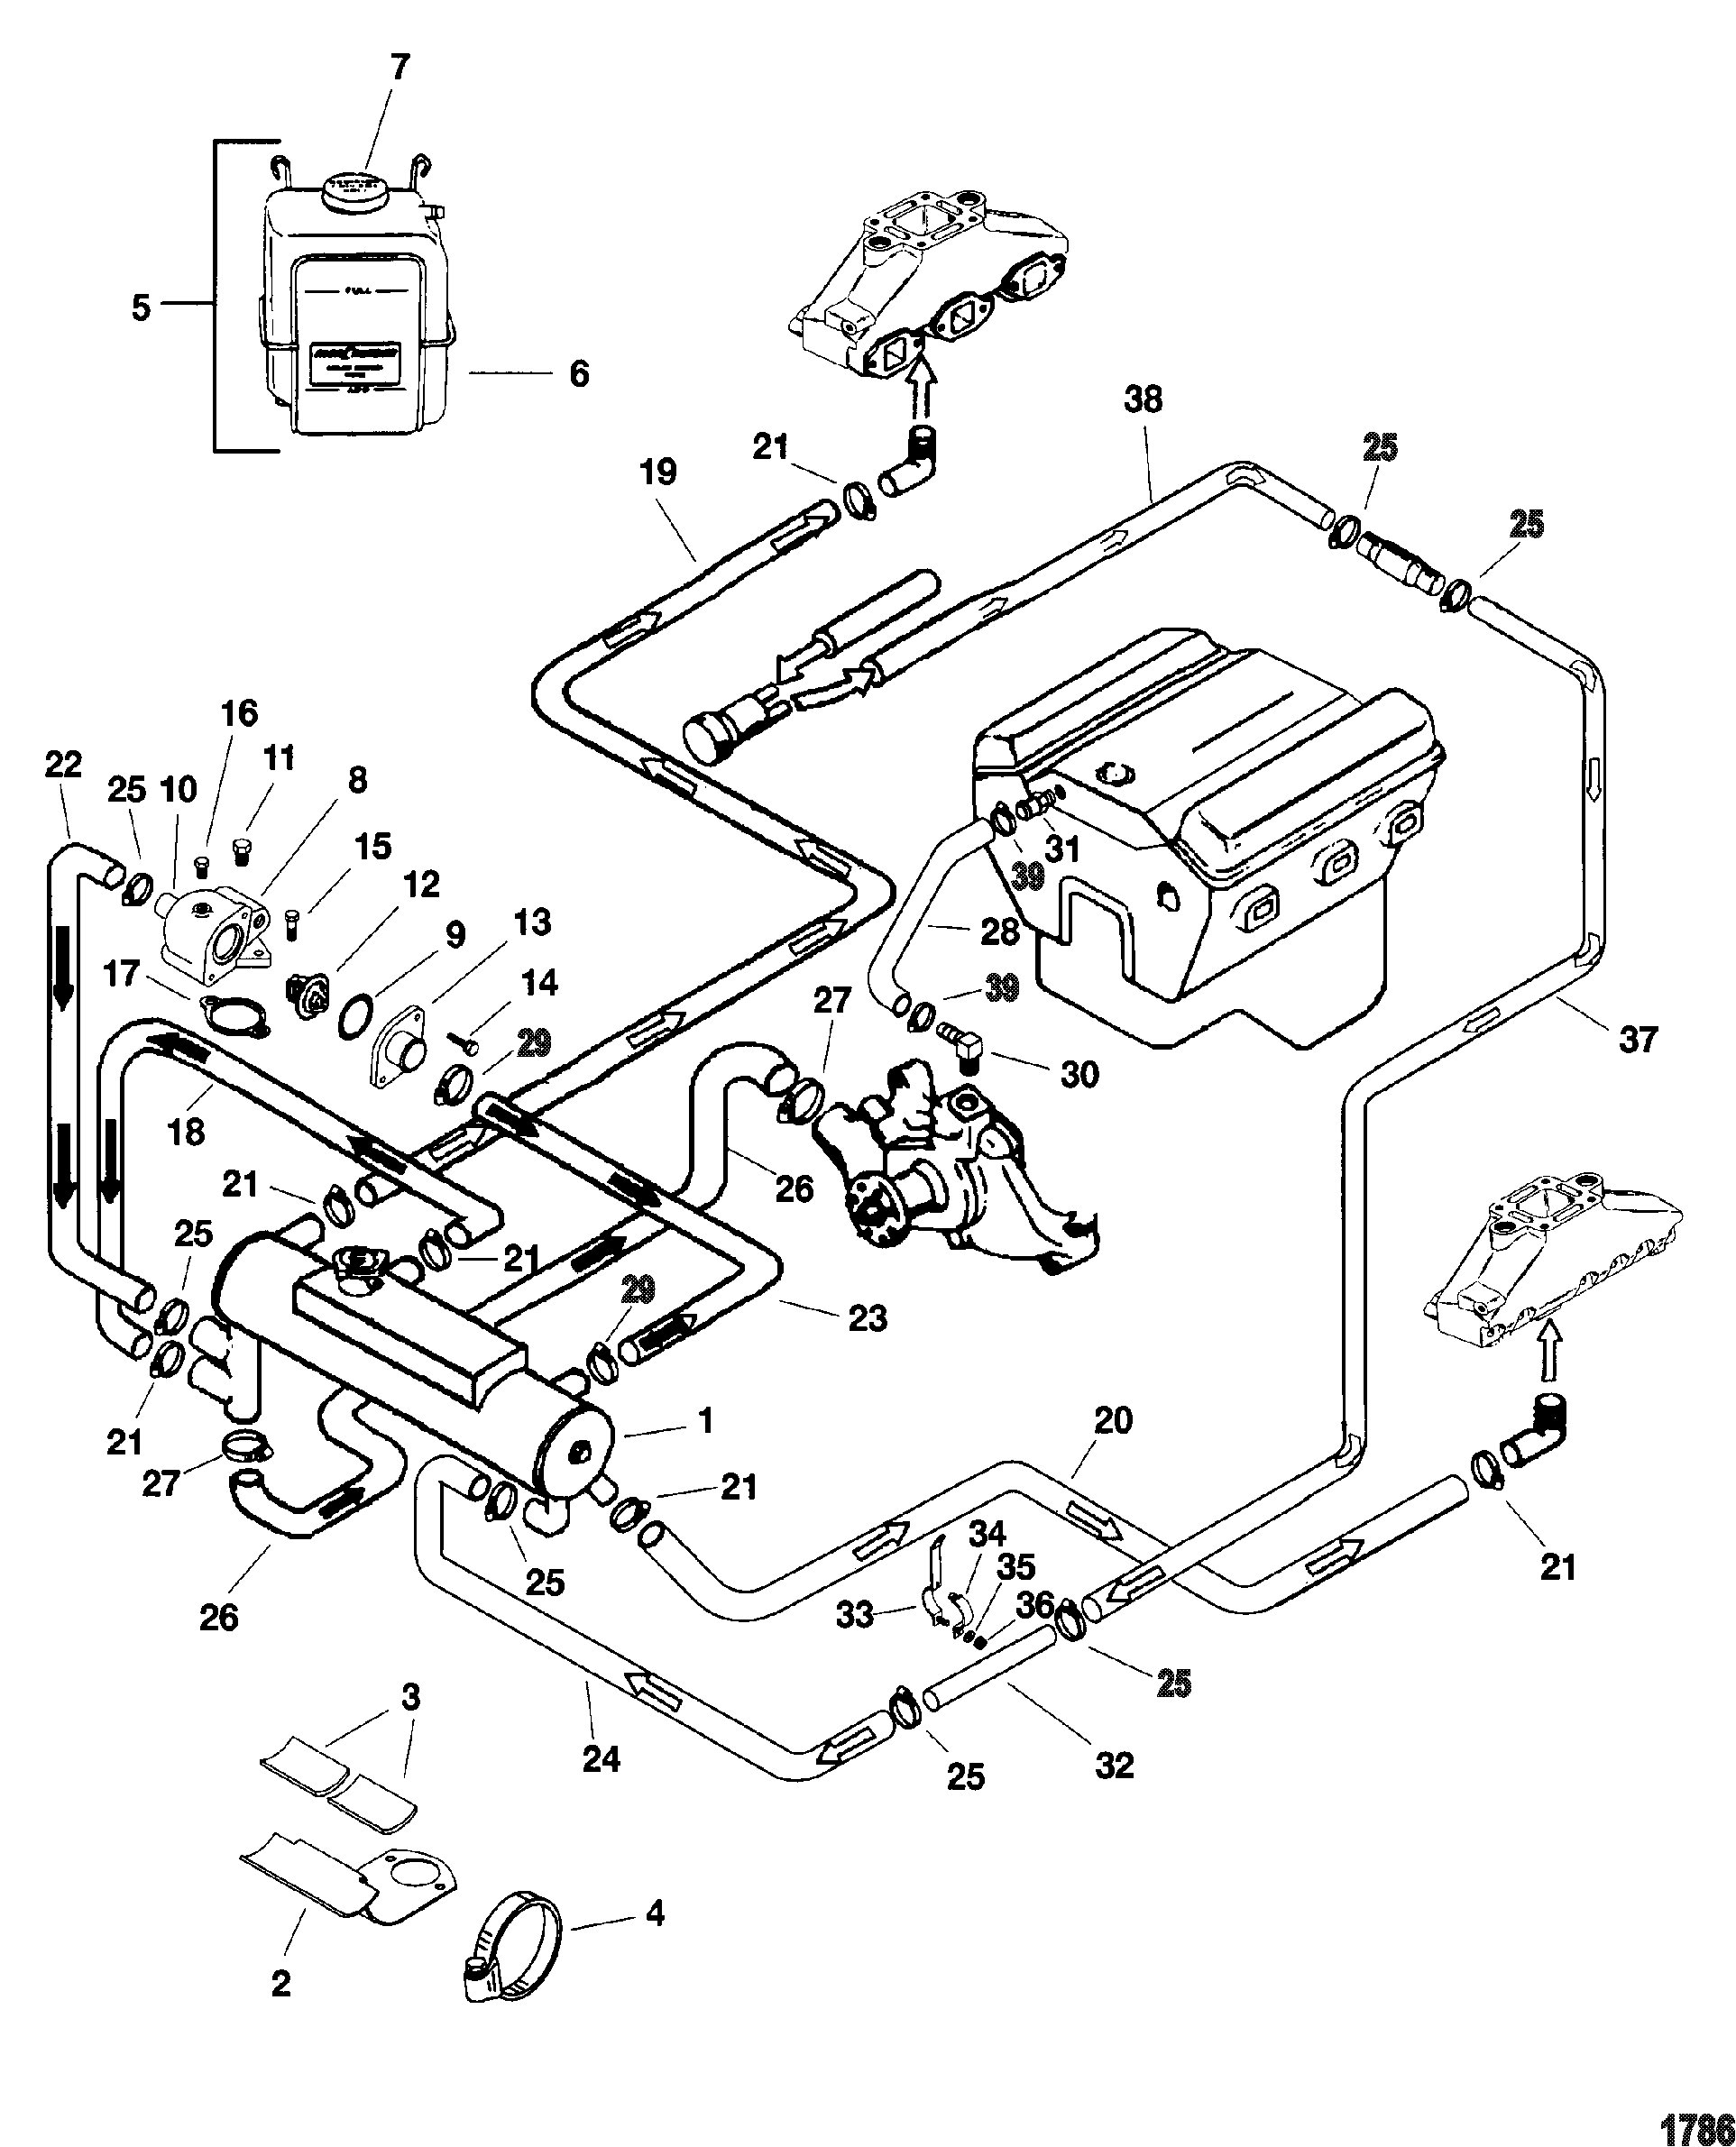 closed cooling system for mercruiser 4 3l efi alpha bravo 262 c i d gen 3 8 Dodge  Engine Block 2004 Dodge Grand Caravan Engine Diagram